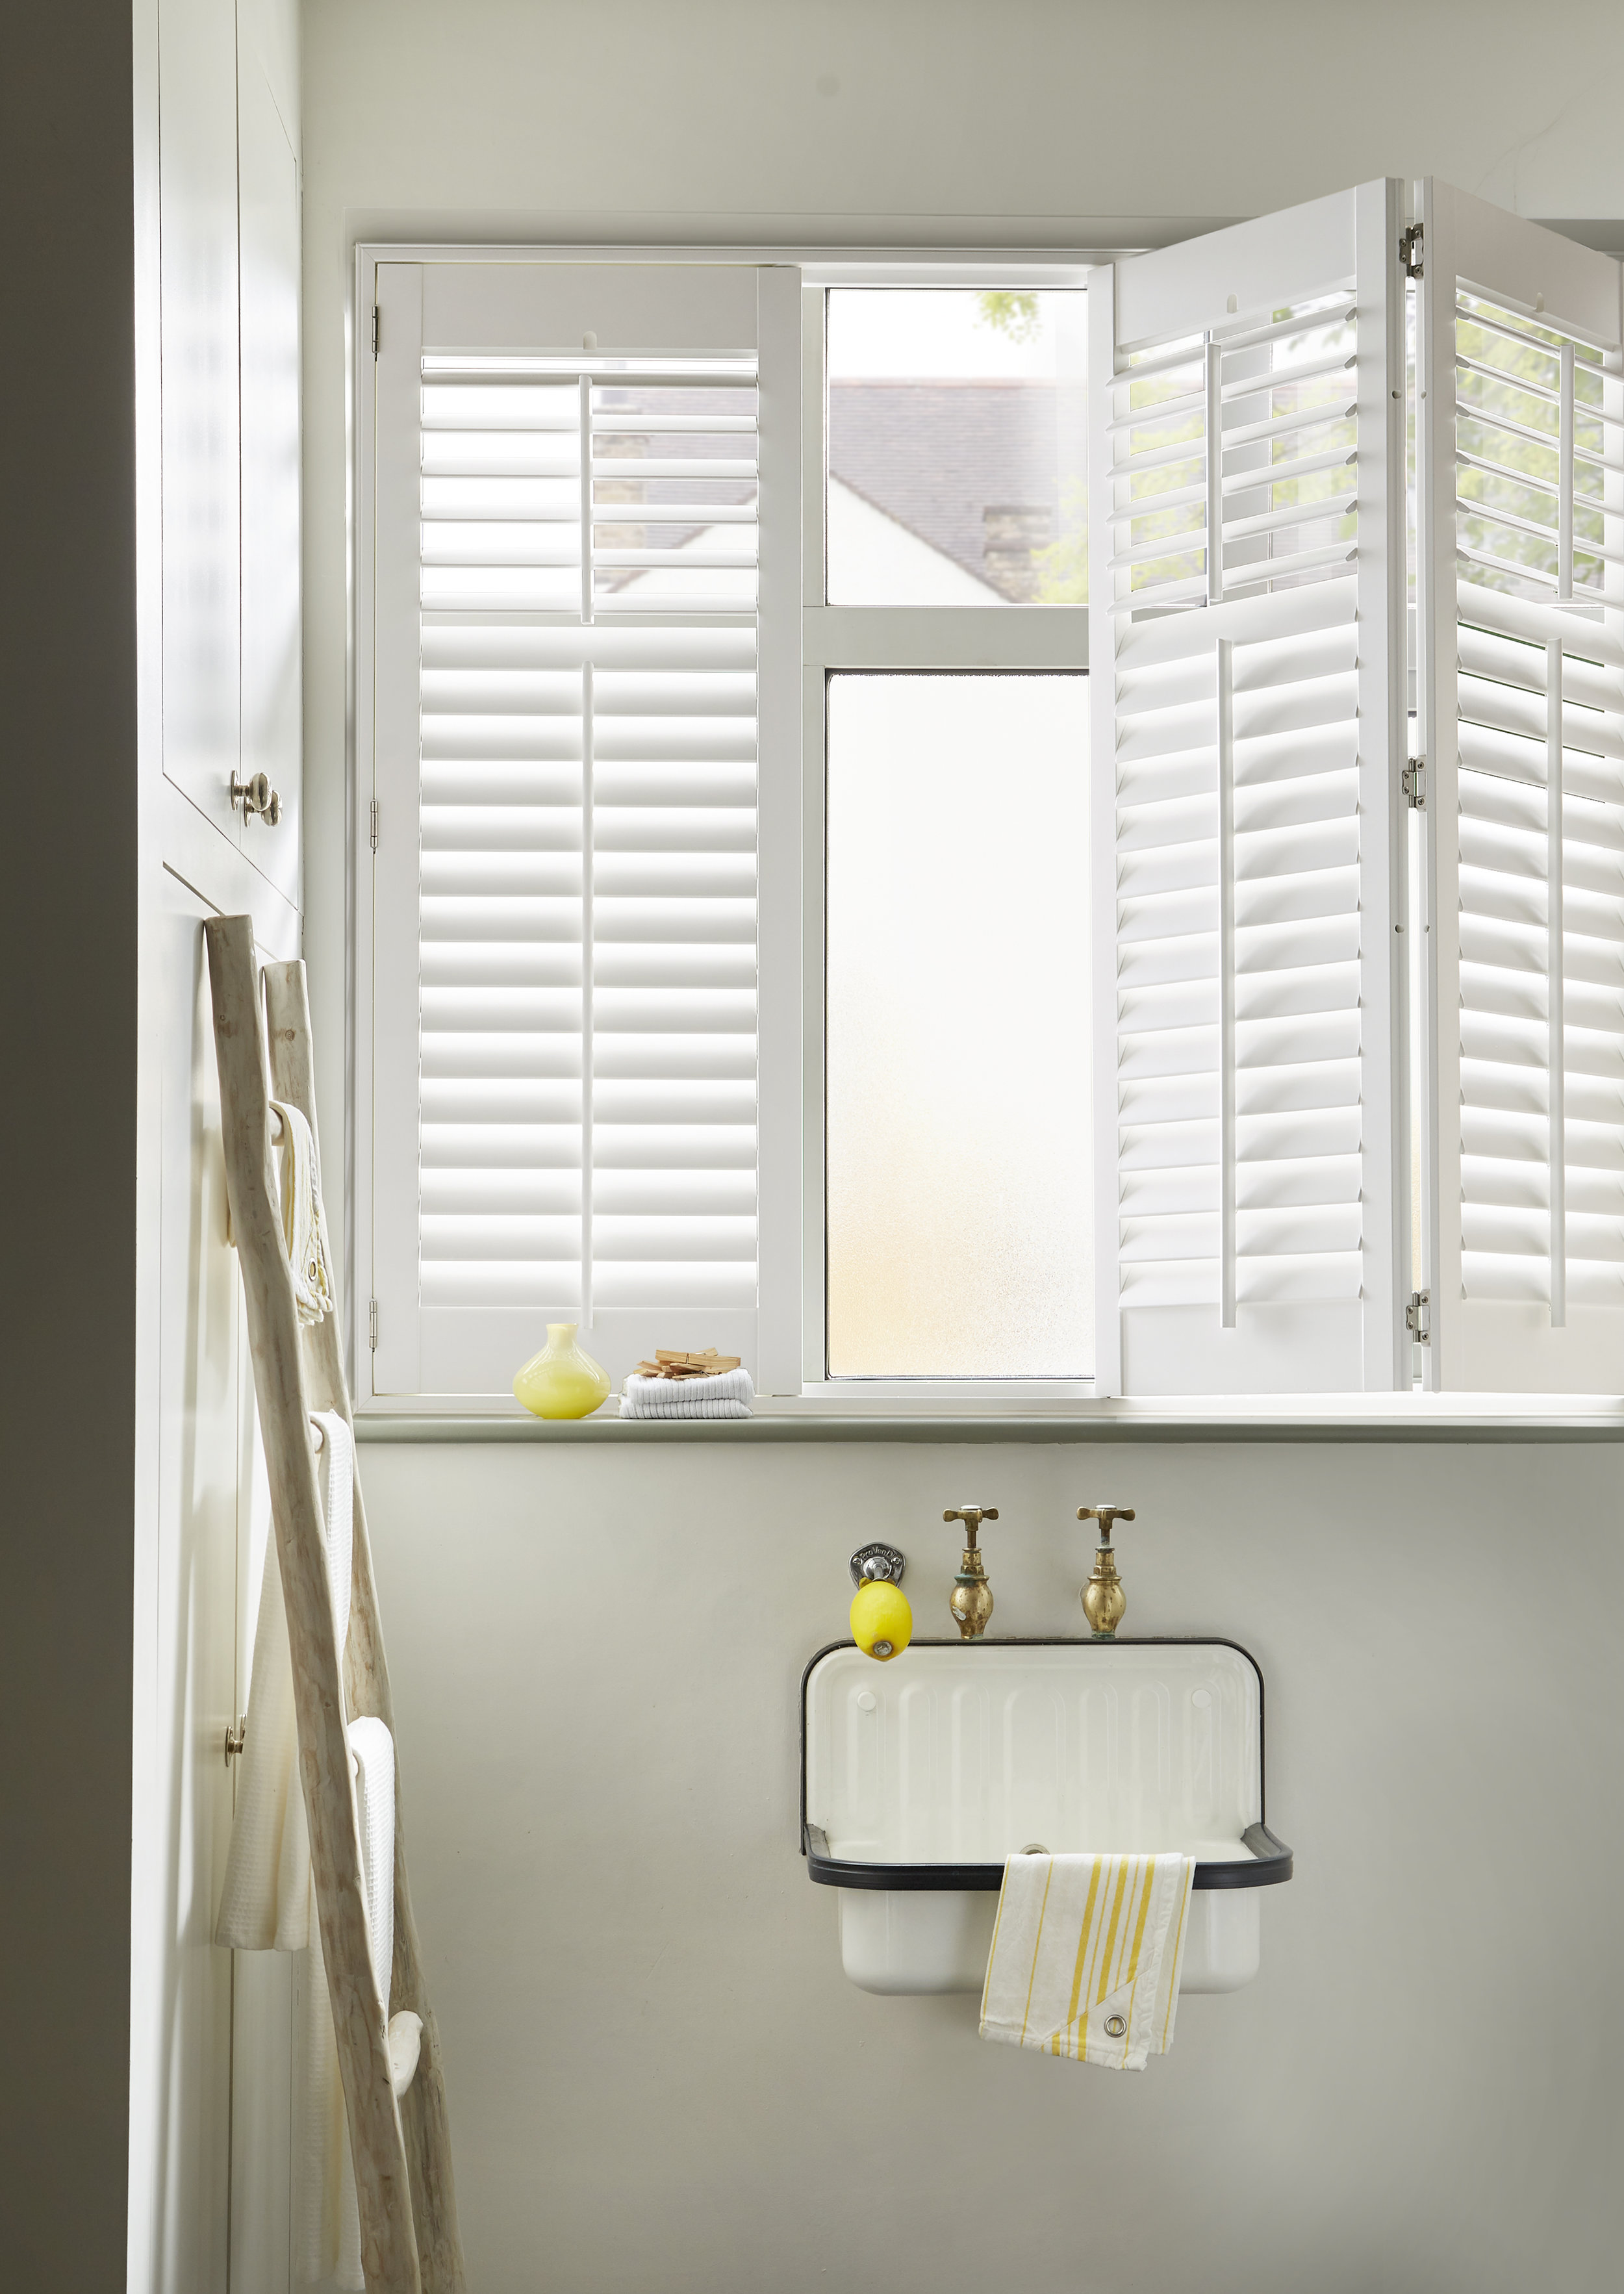 Shutters     Our handcrafted shutters make a statement in any room. Shutters add that extra bit of special to your home.